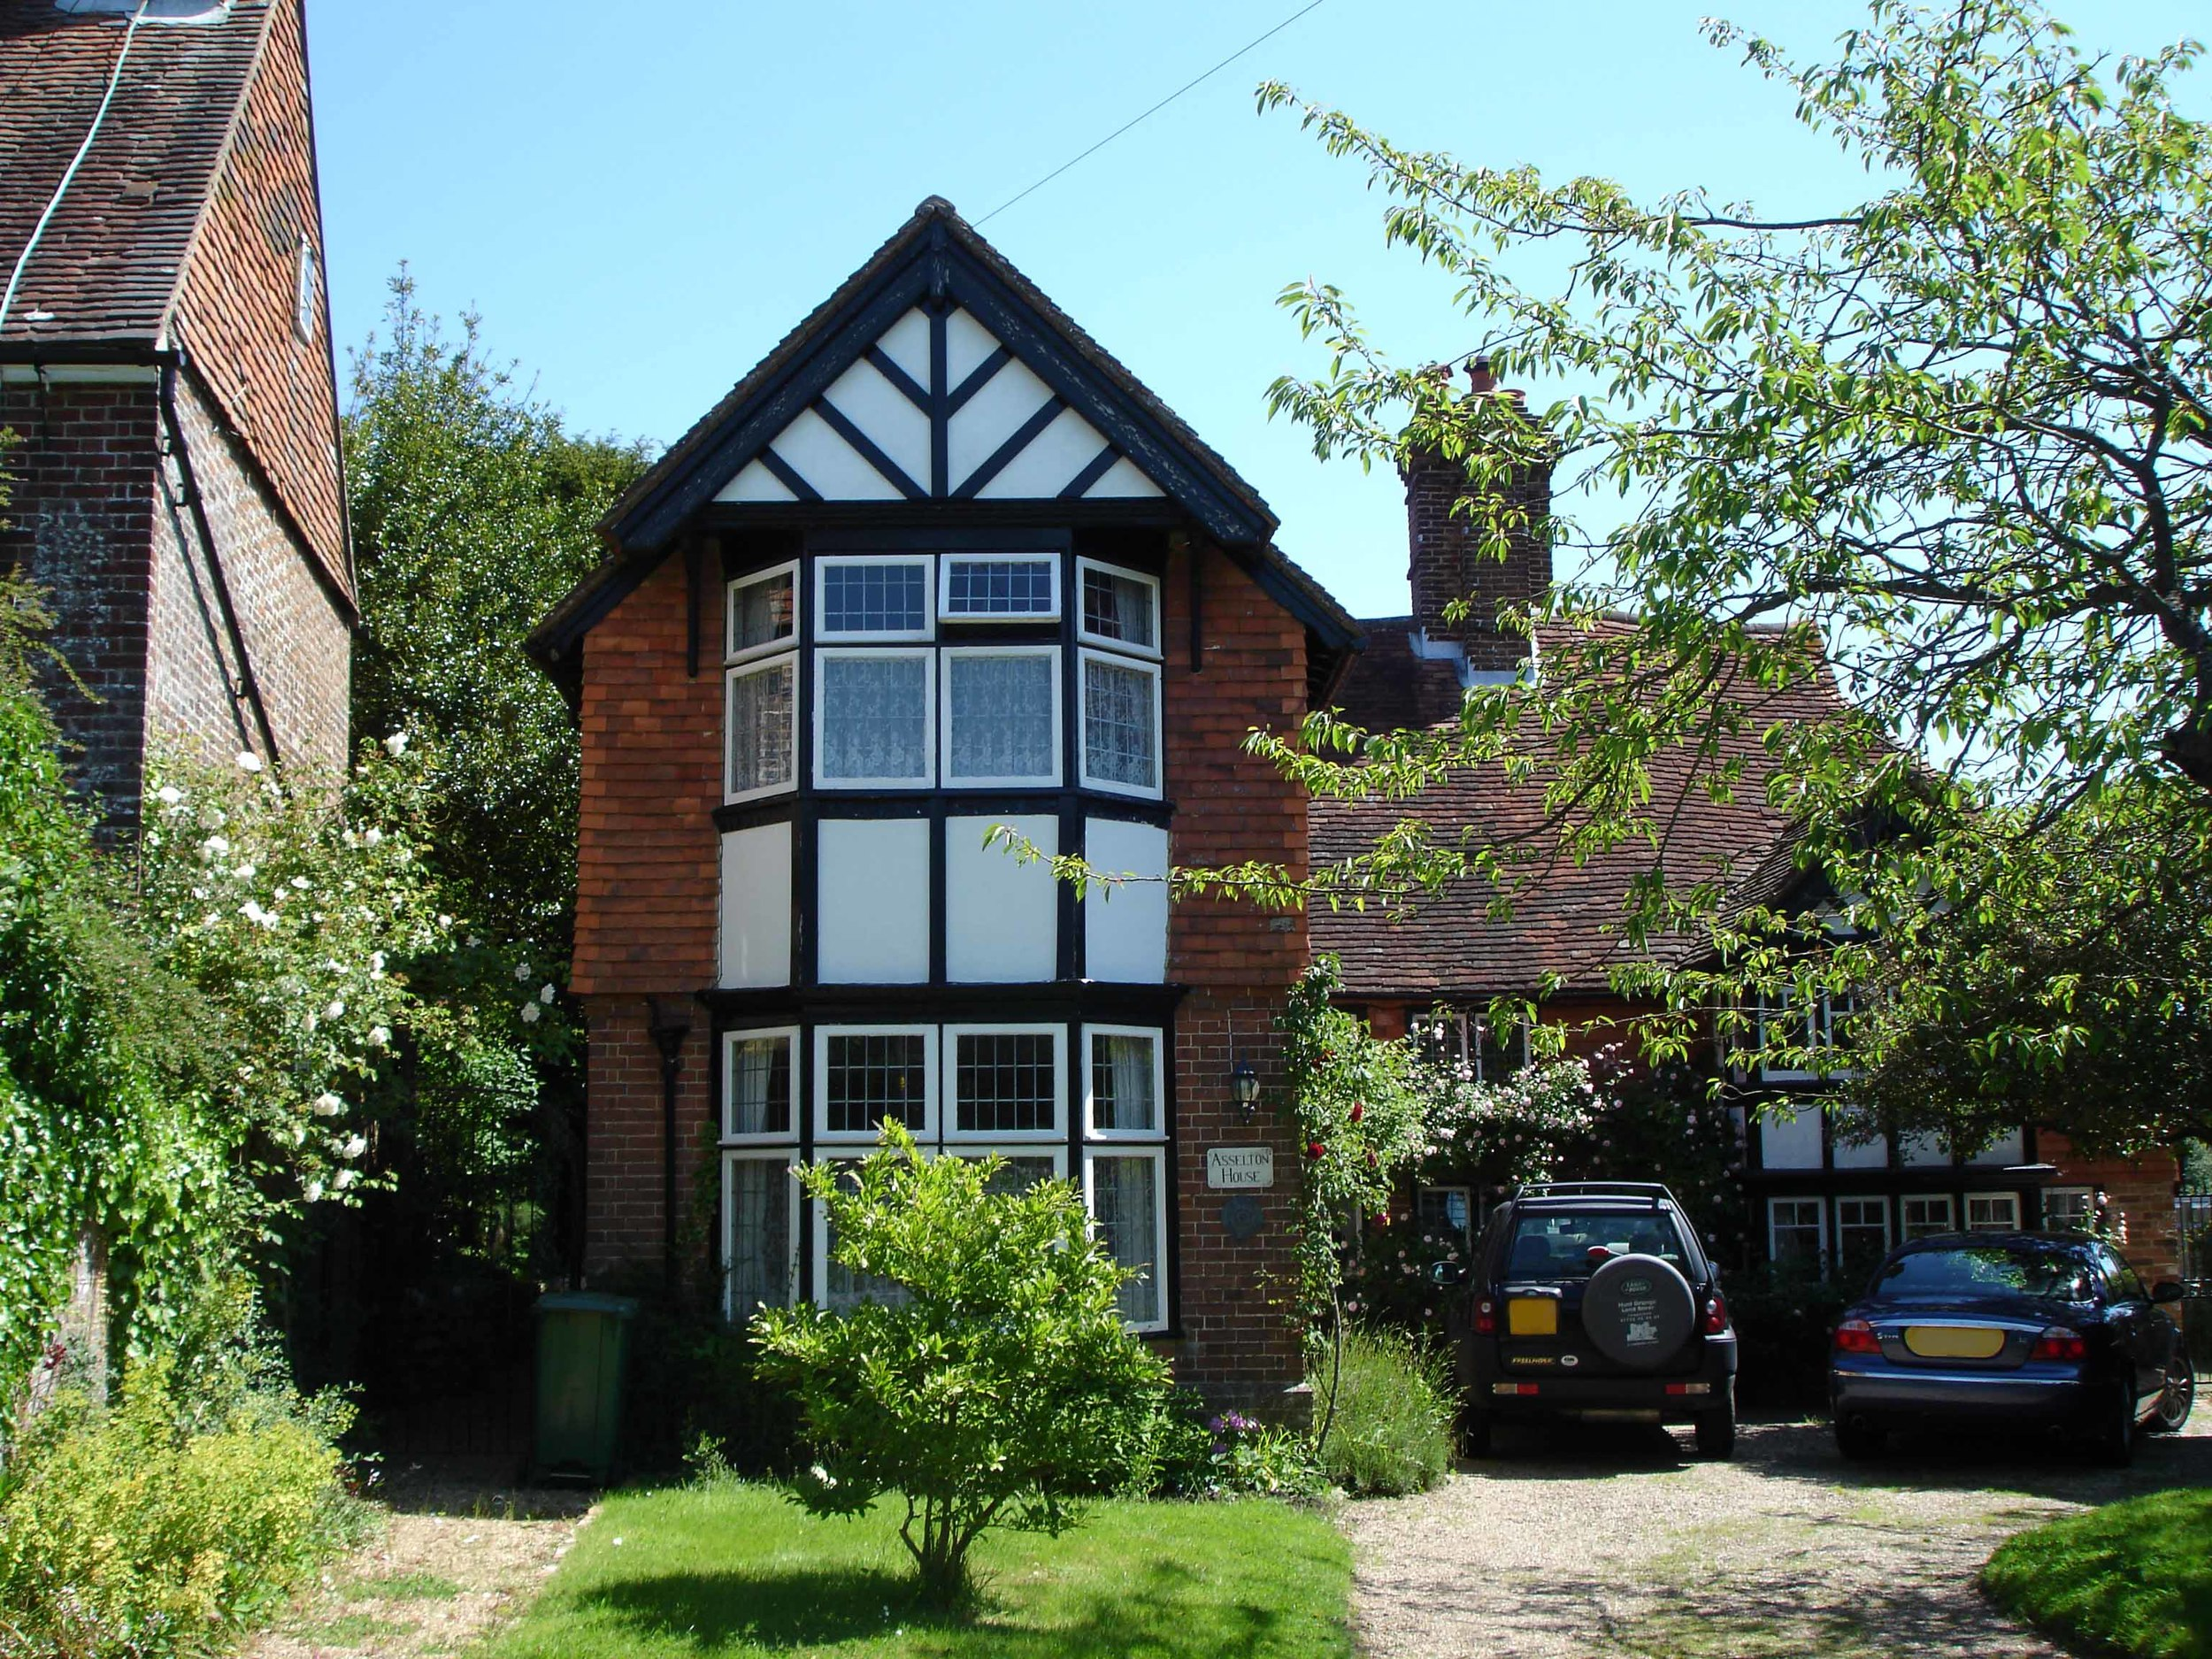 Asselton House is aGrade II listed Property in Sedlescombe